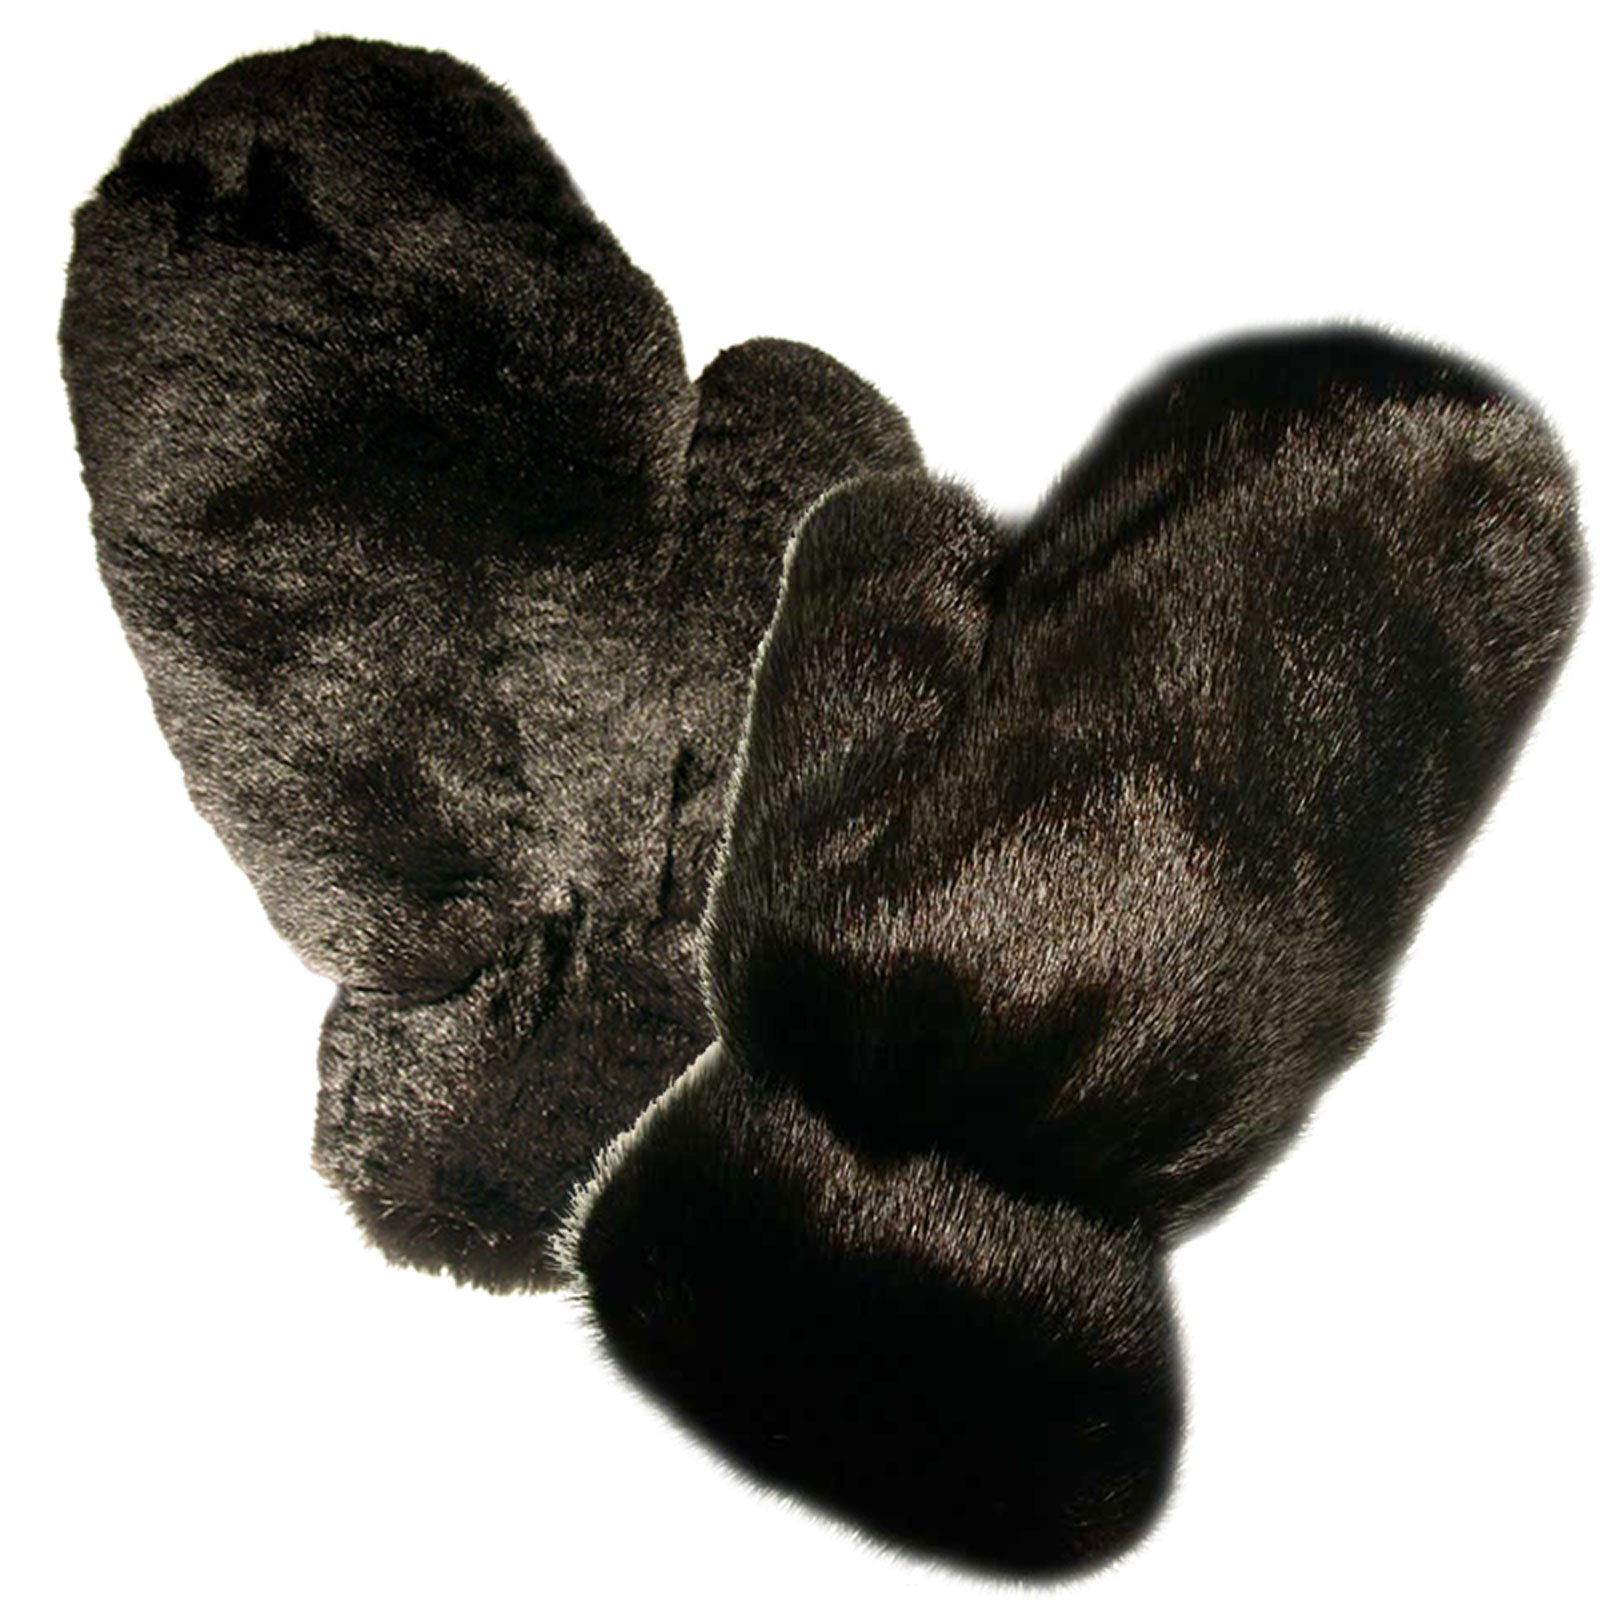 MinkgLove Combination Massage Glove, Mink and Rex Rabbit, Alternating Sensations Silky Smooth and Velvety Soft, Black, Hand Tailored, Unisex - Double Sided Fur